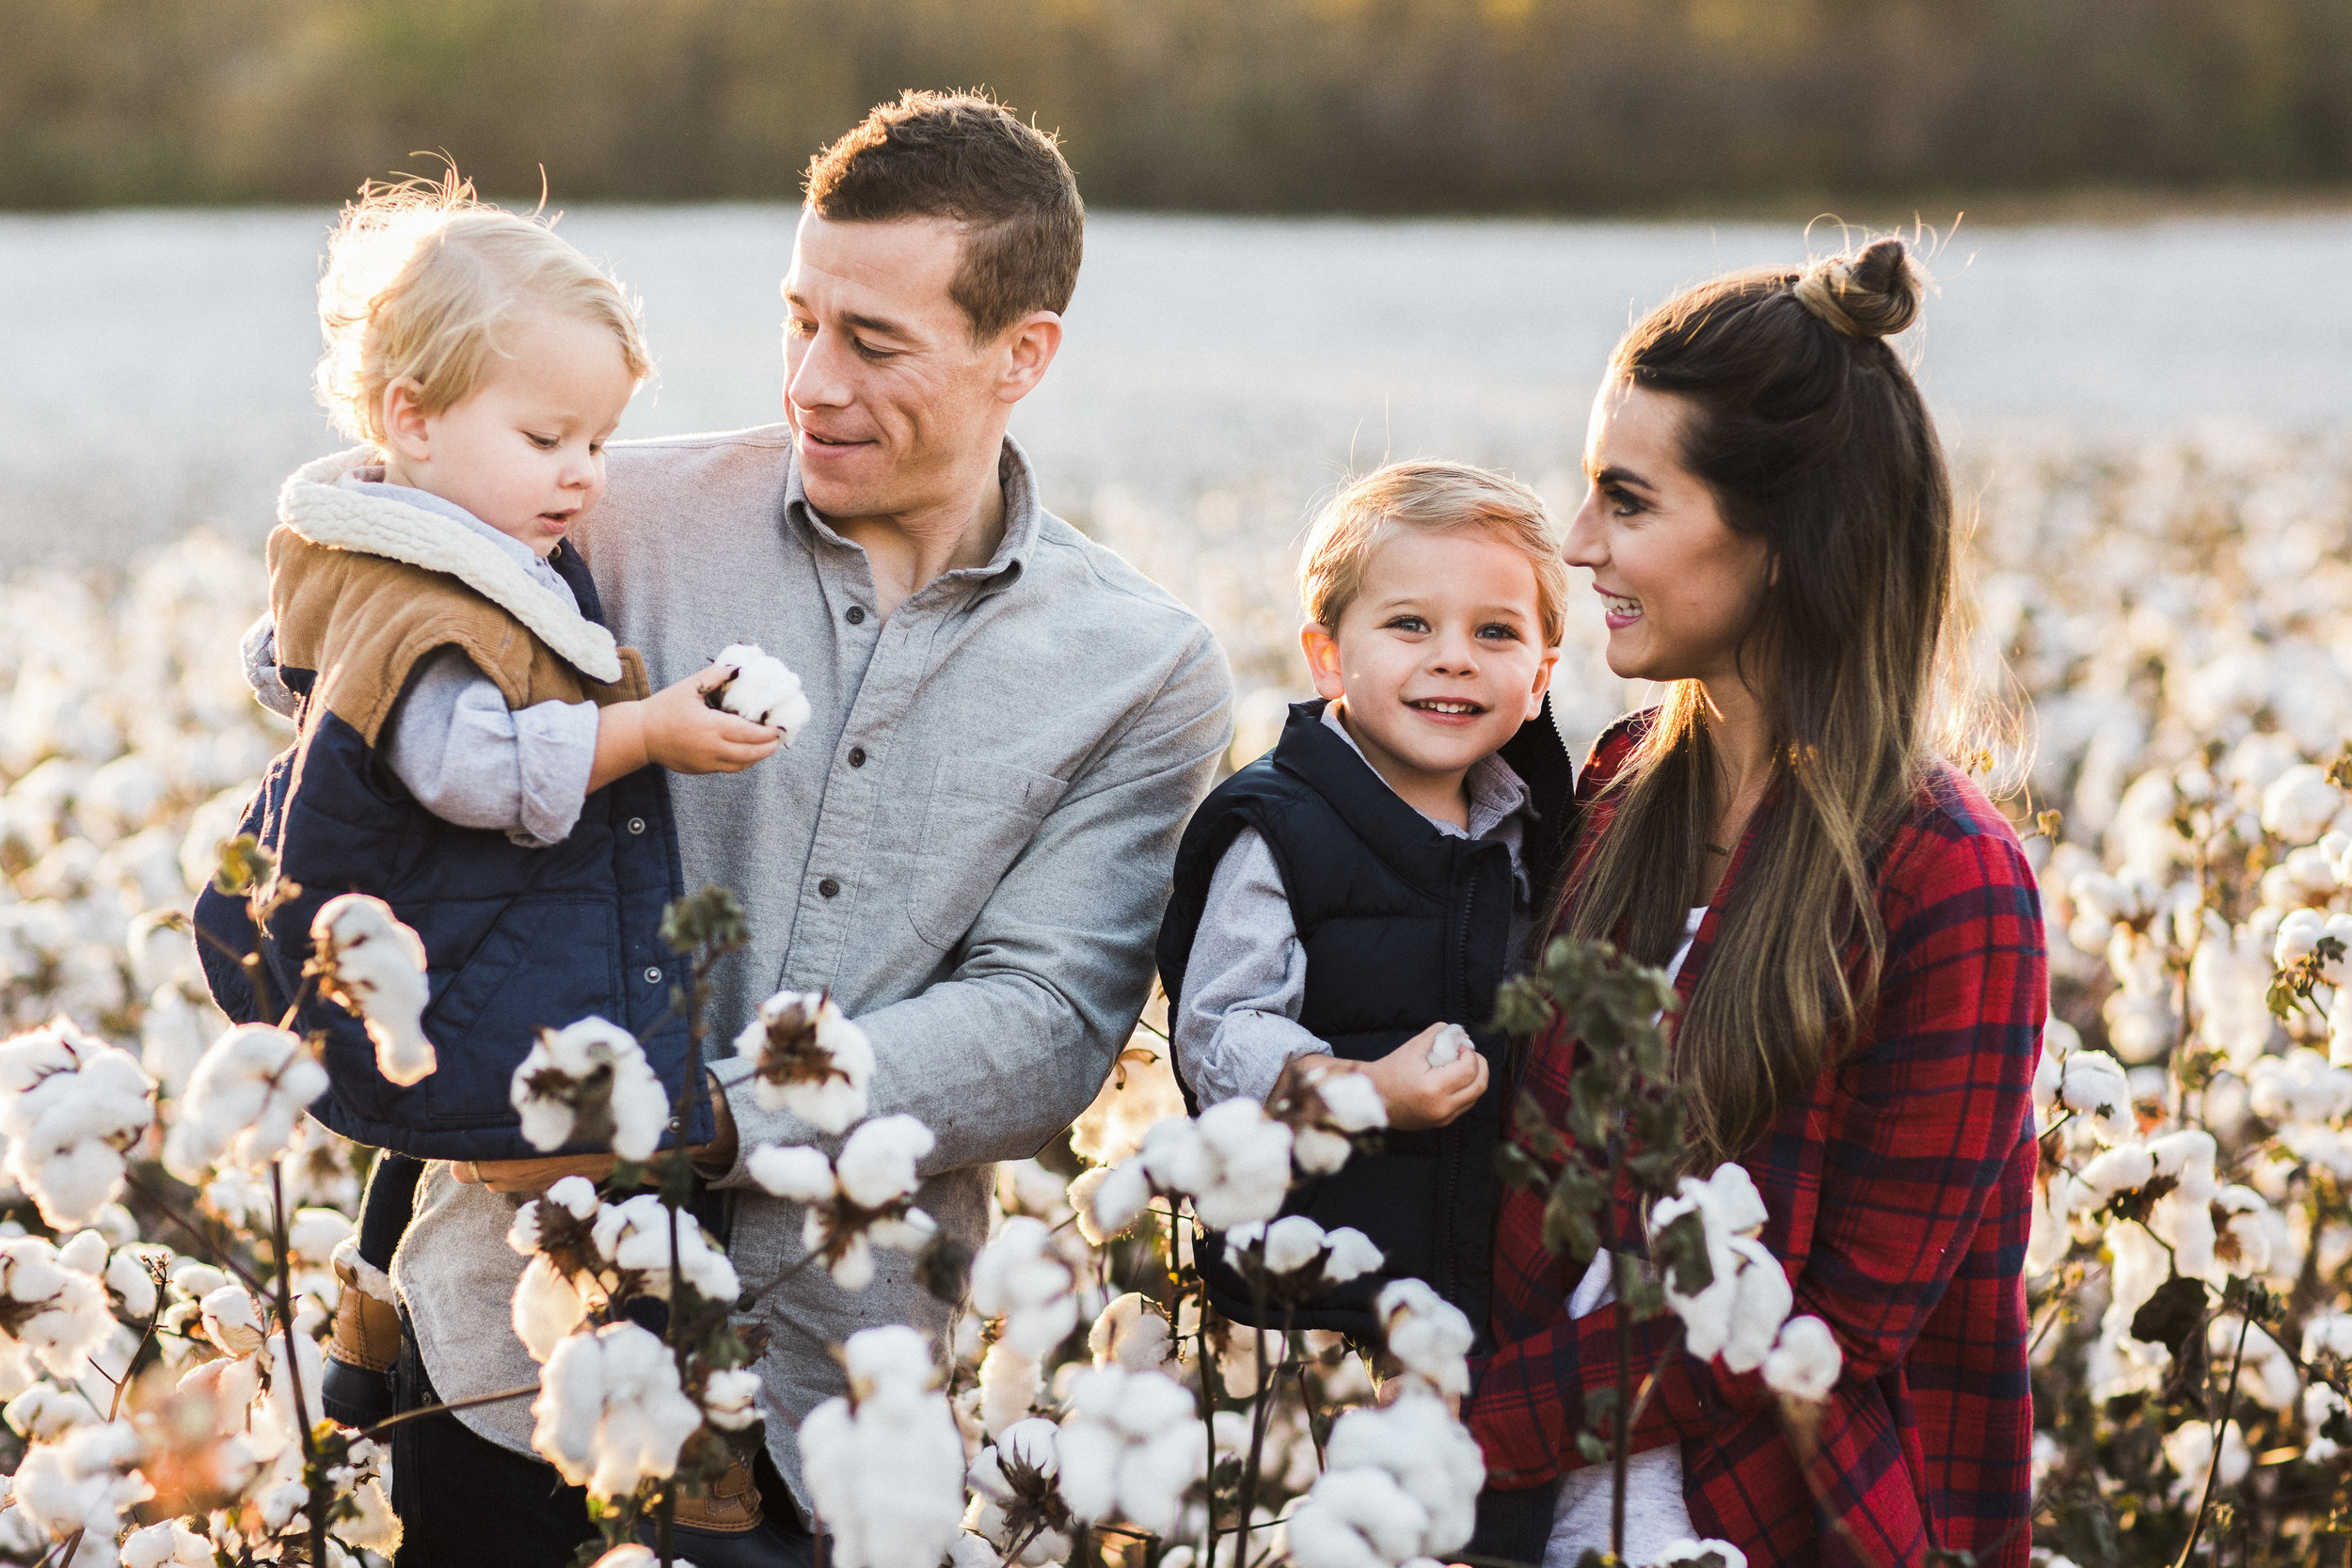 Brandon Chesbro Family Photographer Photo-11.jpg